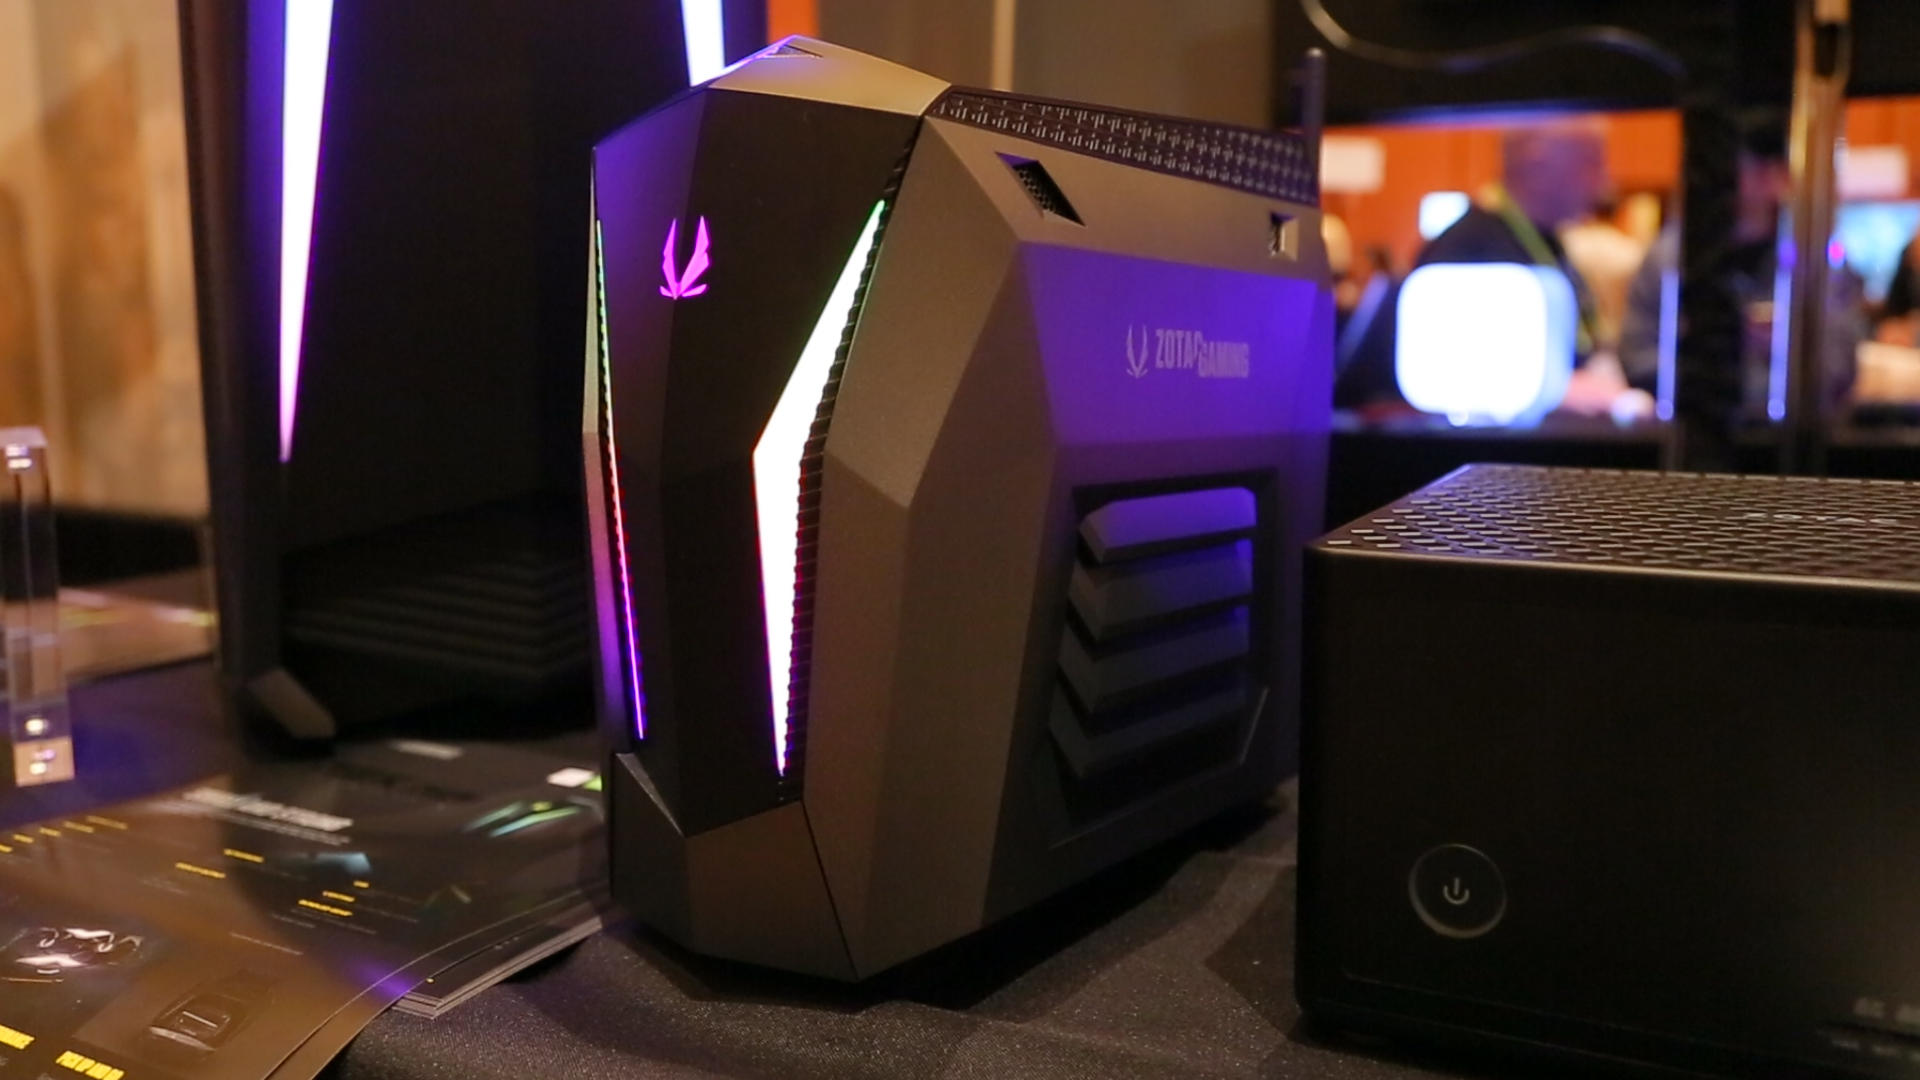 Video: Is this the cutest computer at CES?